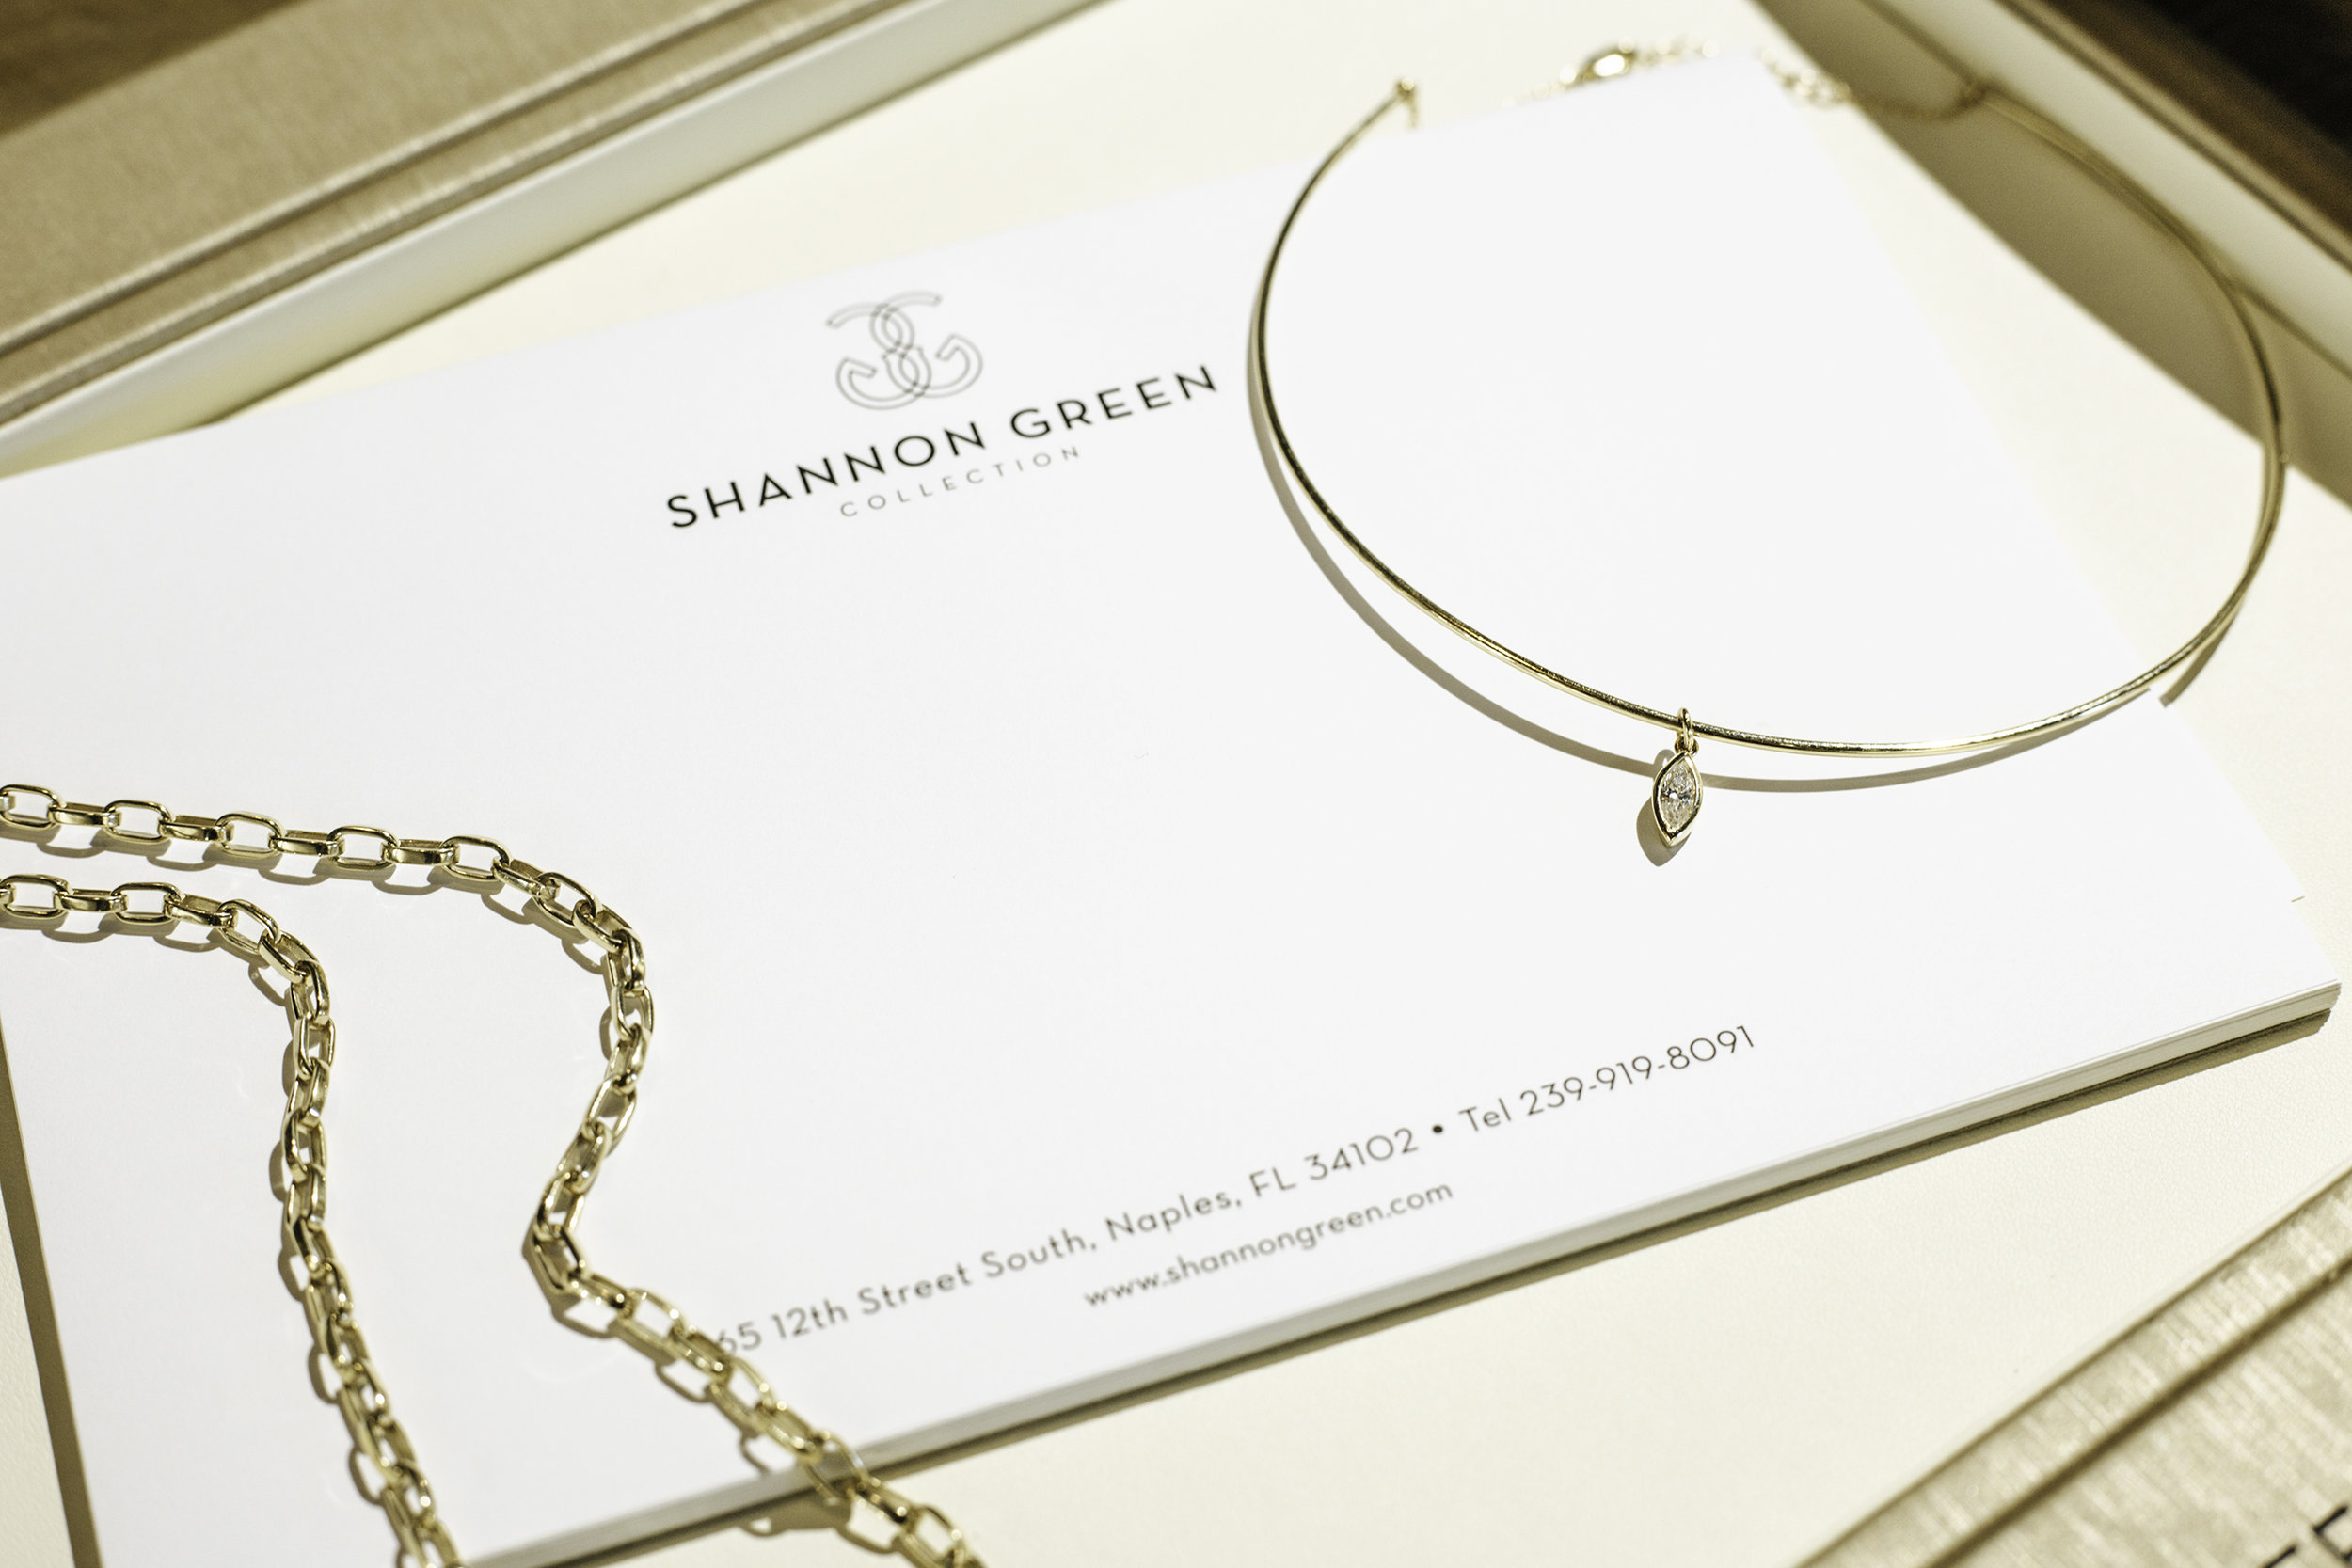 Shannon Green Collection Designer Fine Jewelry Naples Florida.jpg